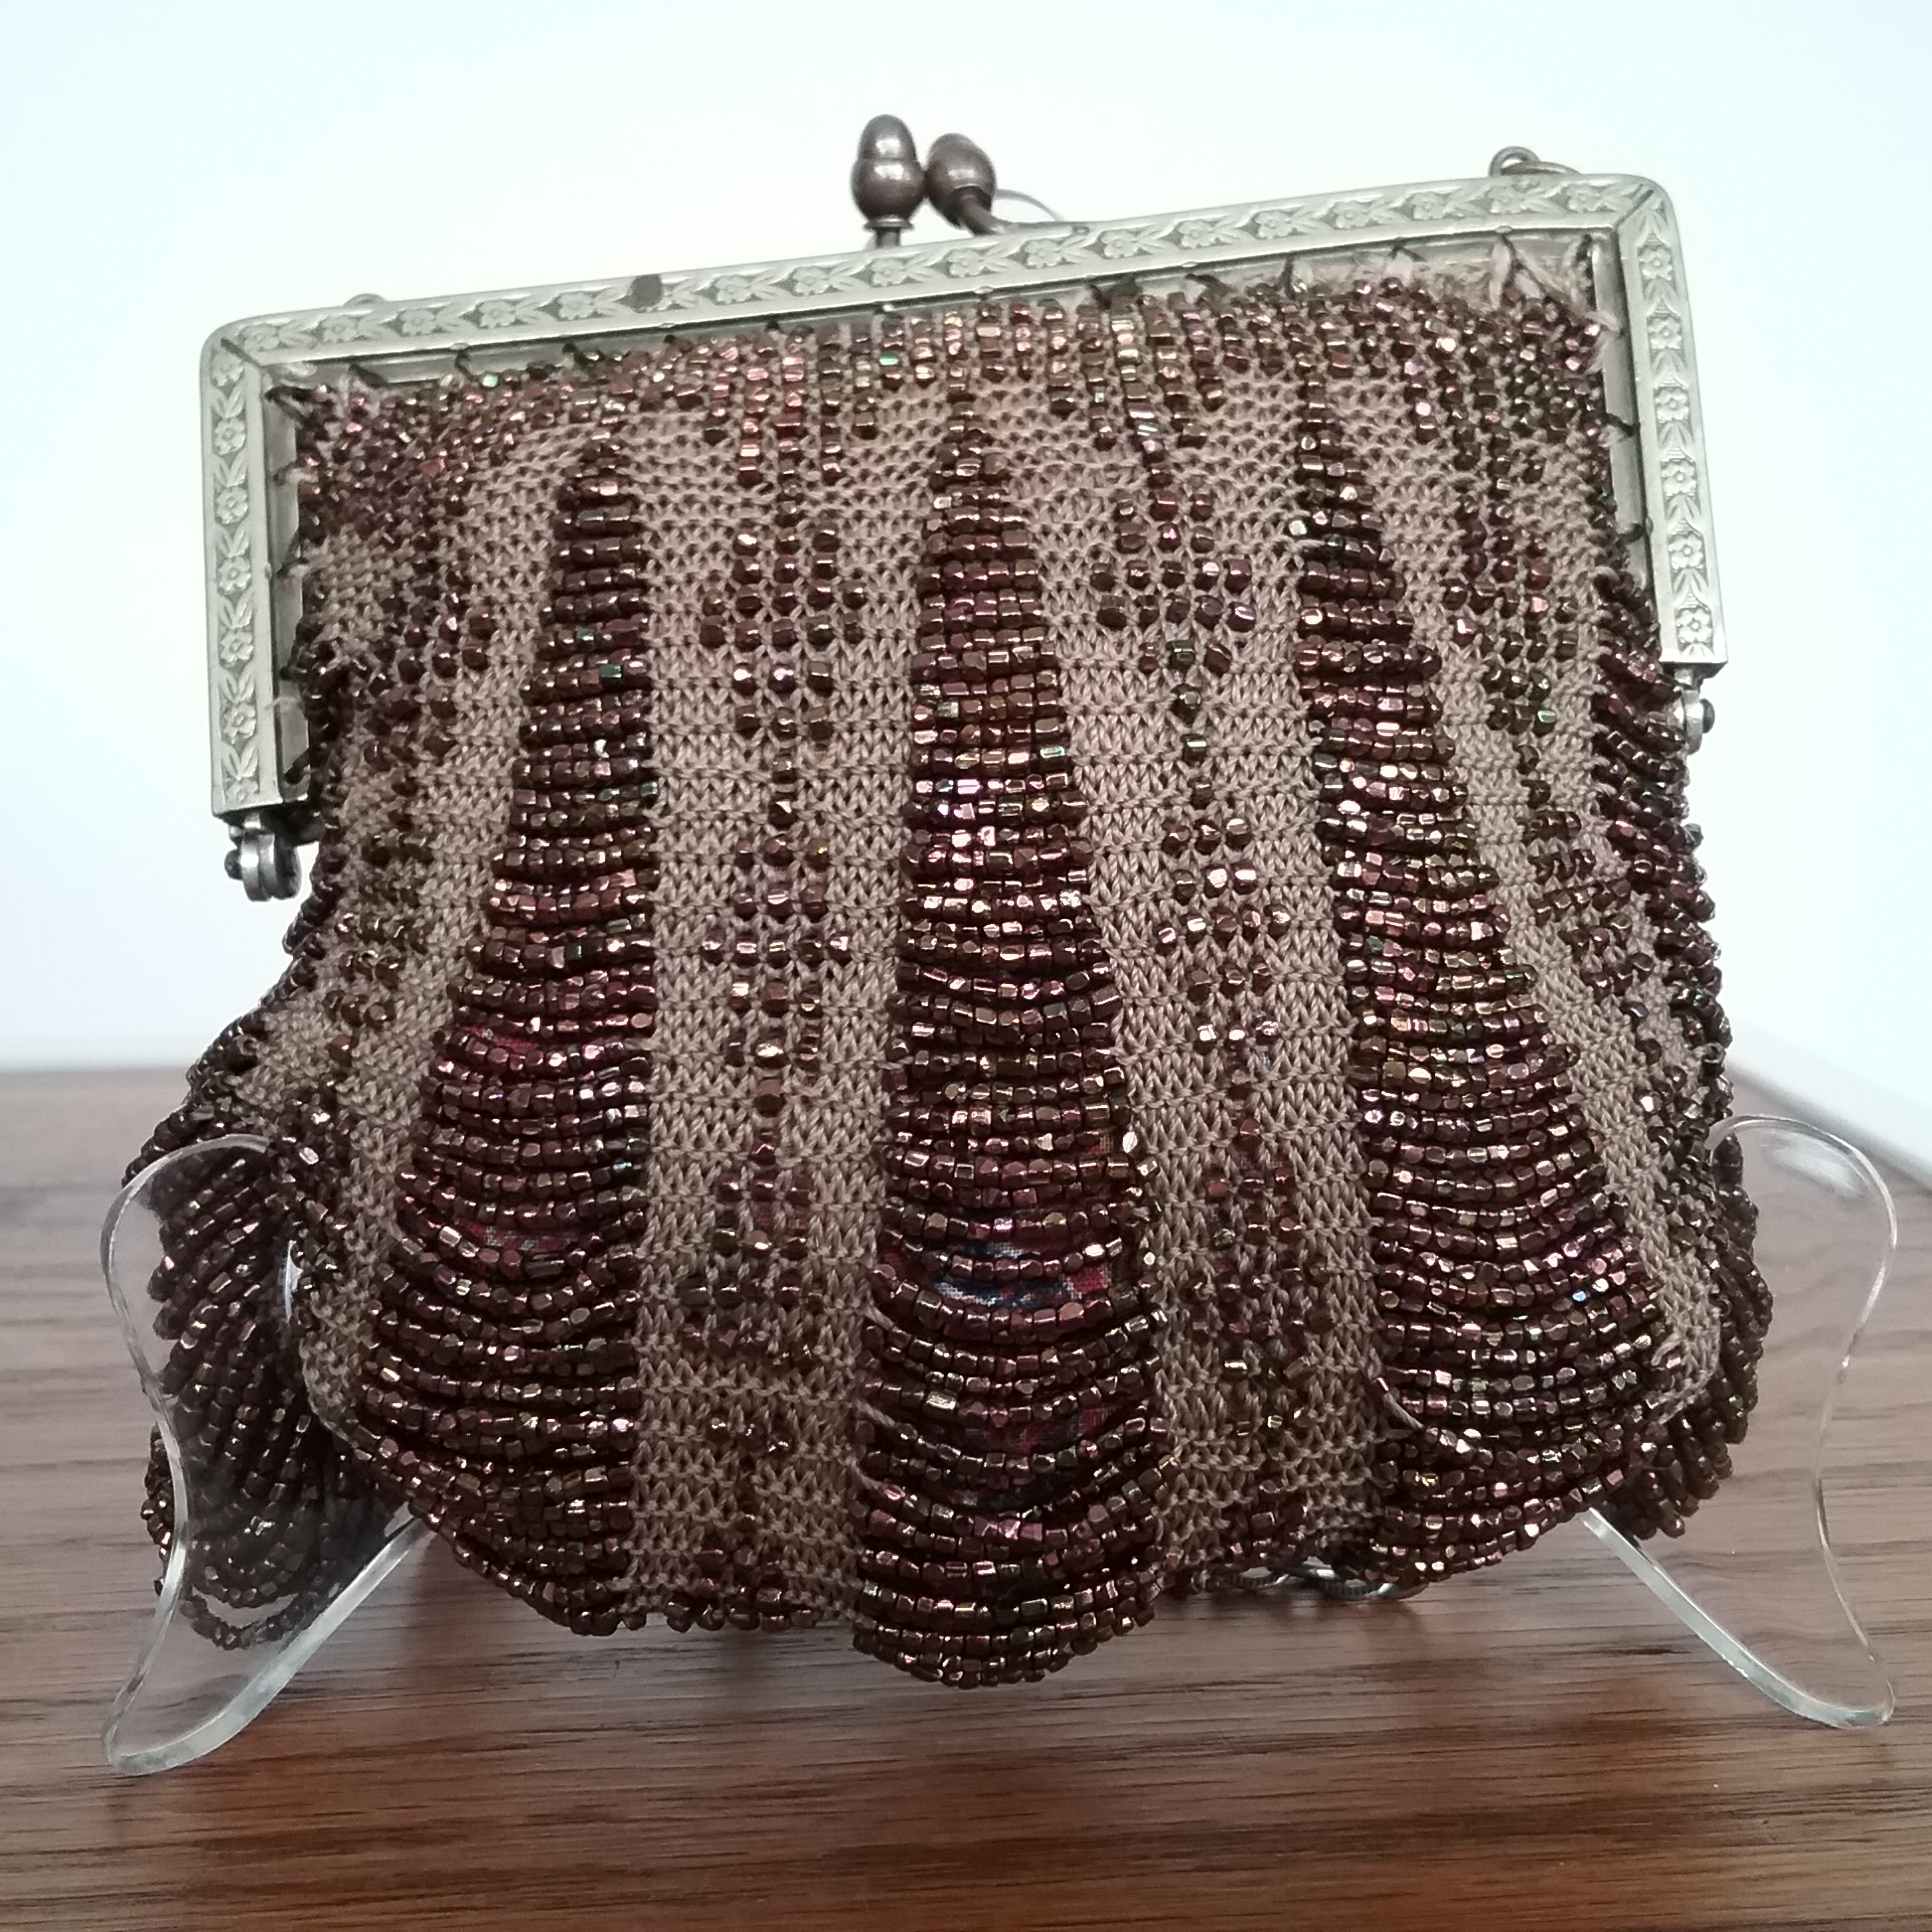 Bronze Purse: Purse featuring bronze seed beads owned by Mrs. Isaac LaBeau. Donated by John & Marge Copa. MCHS collections, #1993.21.1.